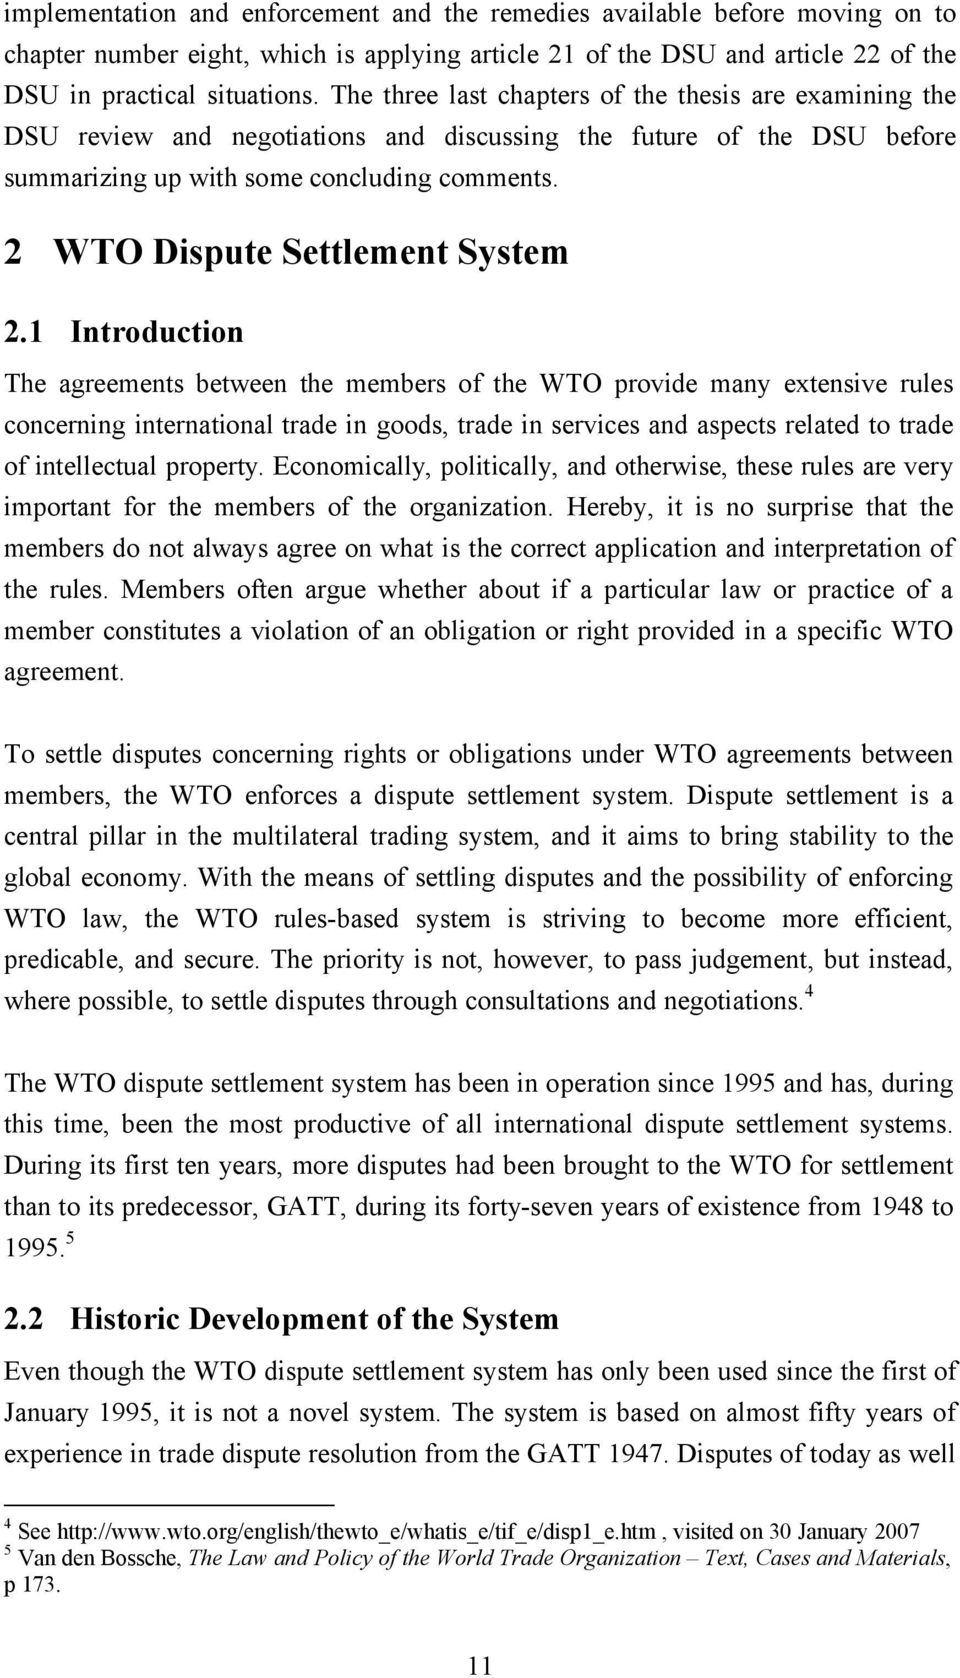 2 WTO Dispute Settlement System 2.